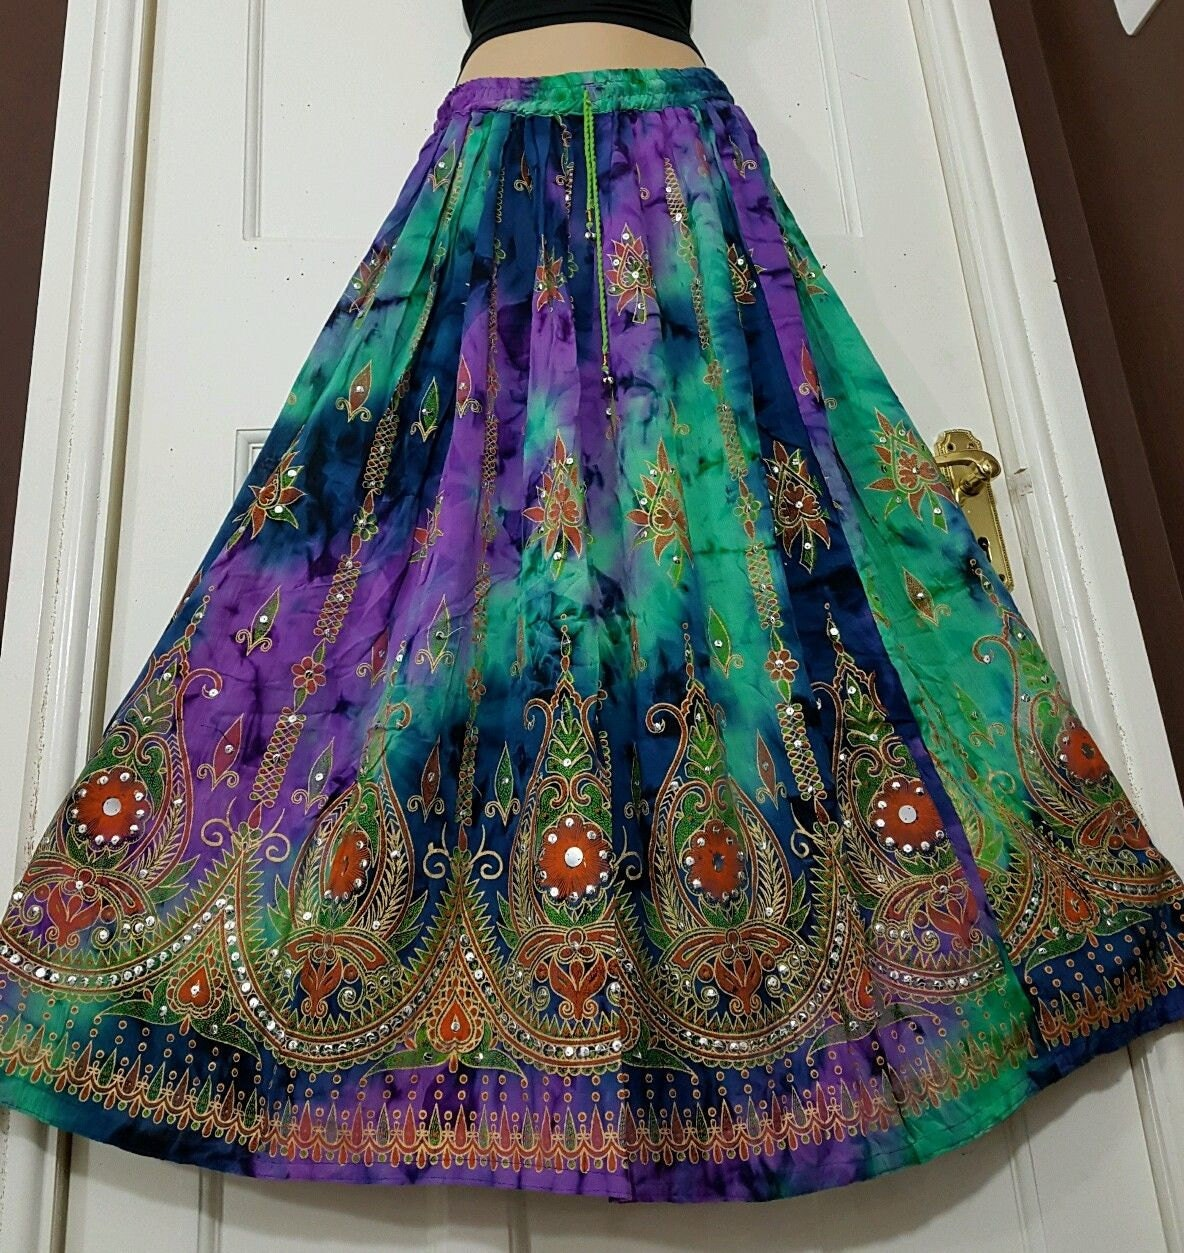 Ladies Boho Hippie Gypsy Long Skirt Party Sequin Rayon TieDye Block Painted Aqua GreenBluePurple Handmade freesize XS S M L